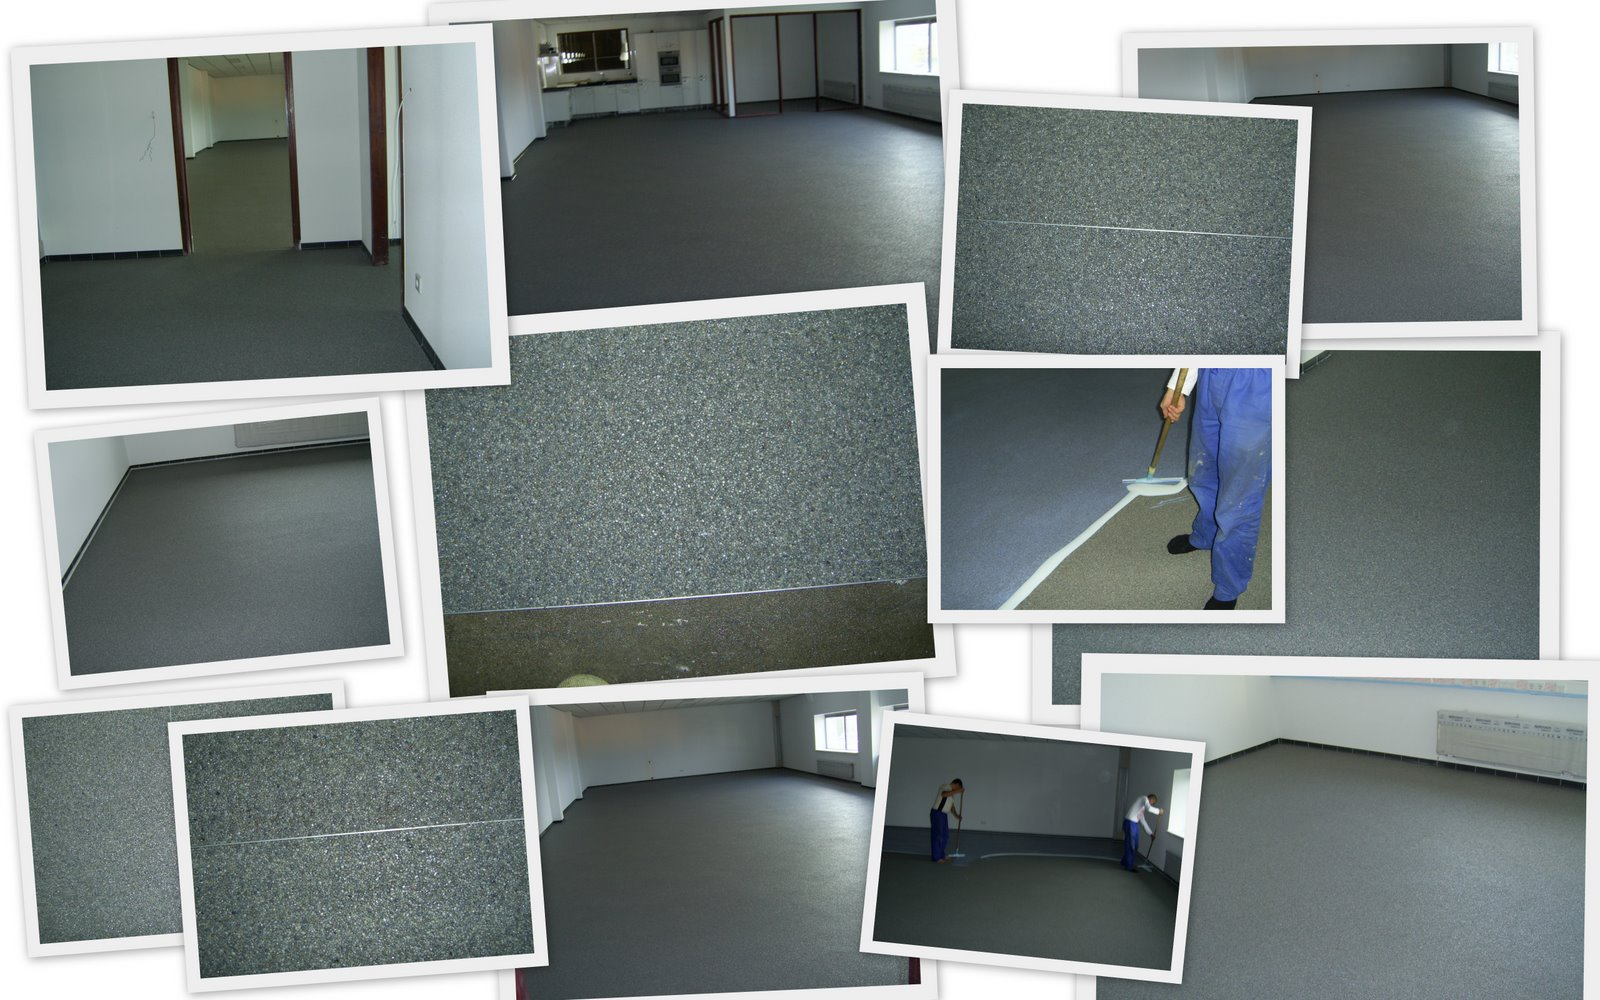 Sol r sine for Resine epoxy pour sol garage